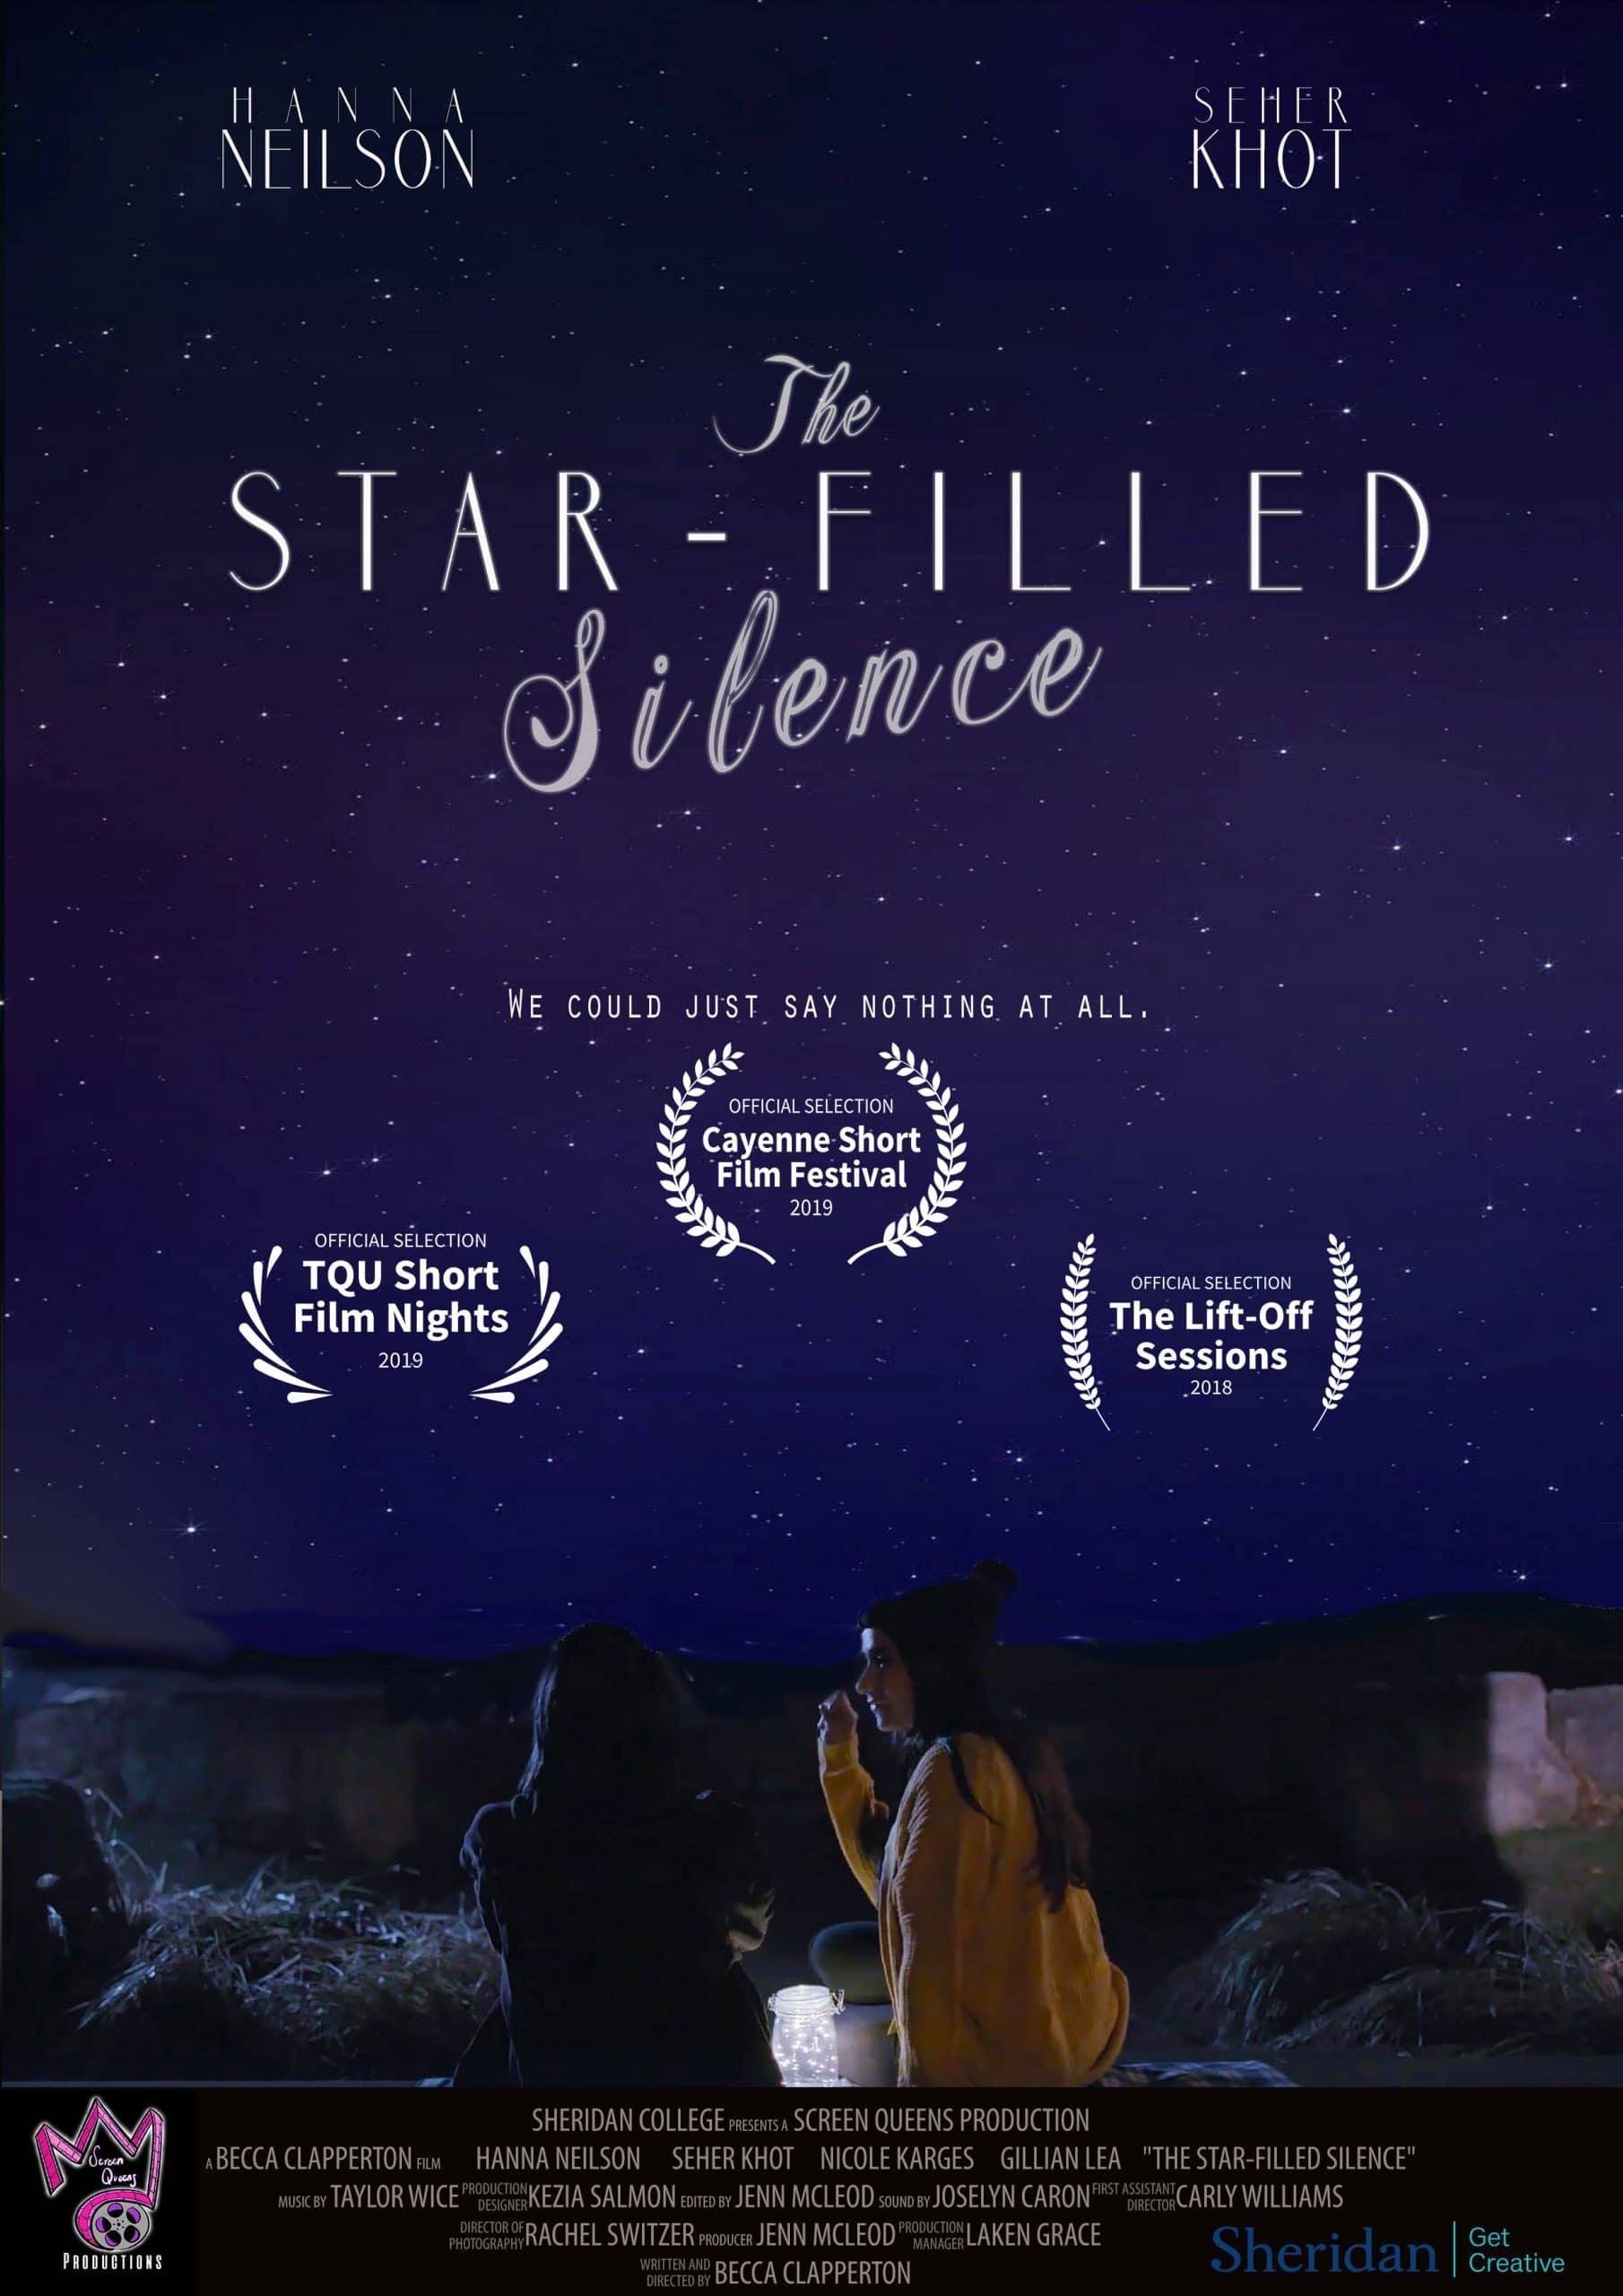 The Star-Filled Silence